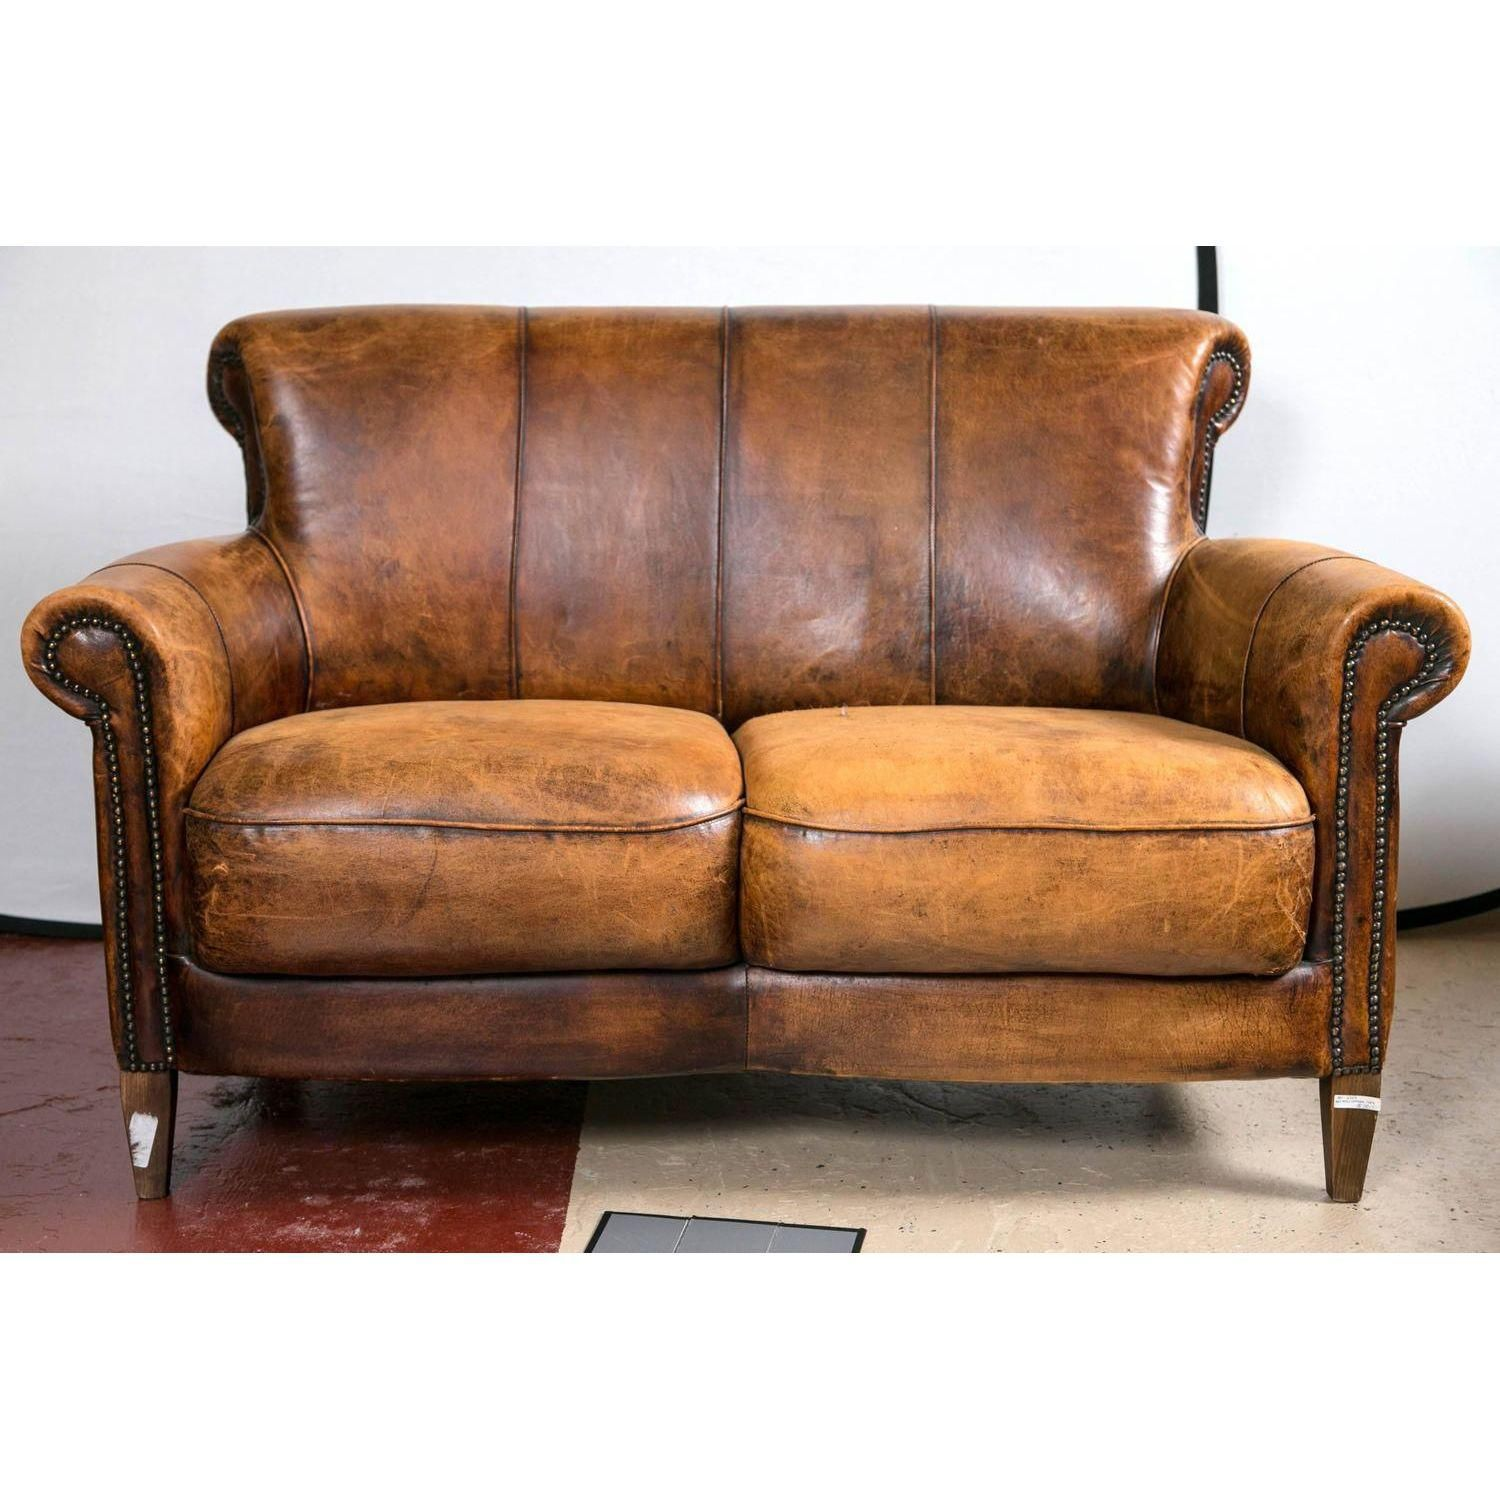 Vintage Sofa Lounge Winston Salem Image Of Vintage French Distressed Art Deco Leather Sofa Home